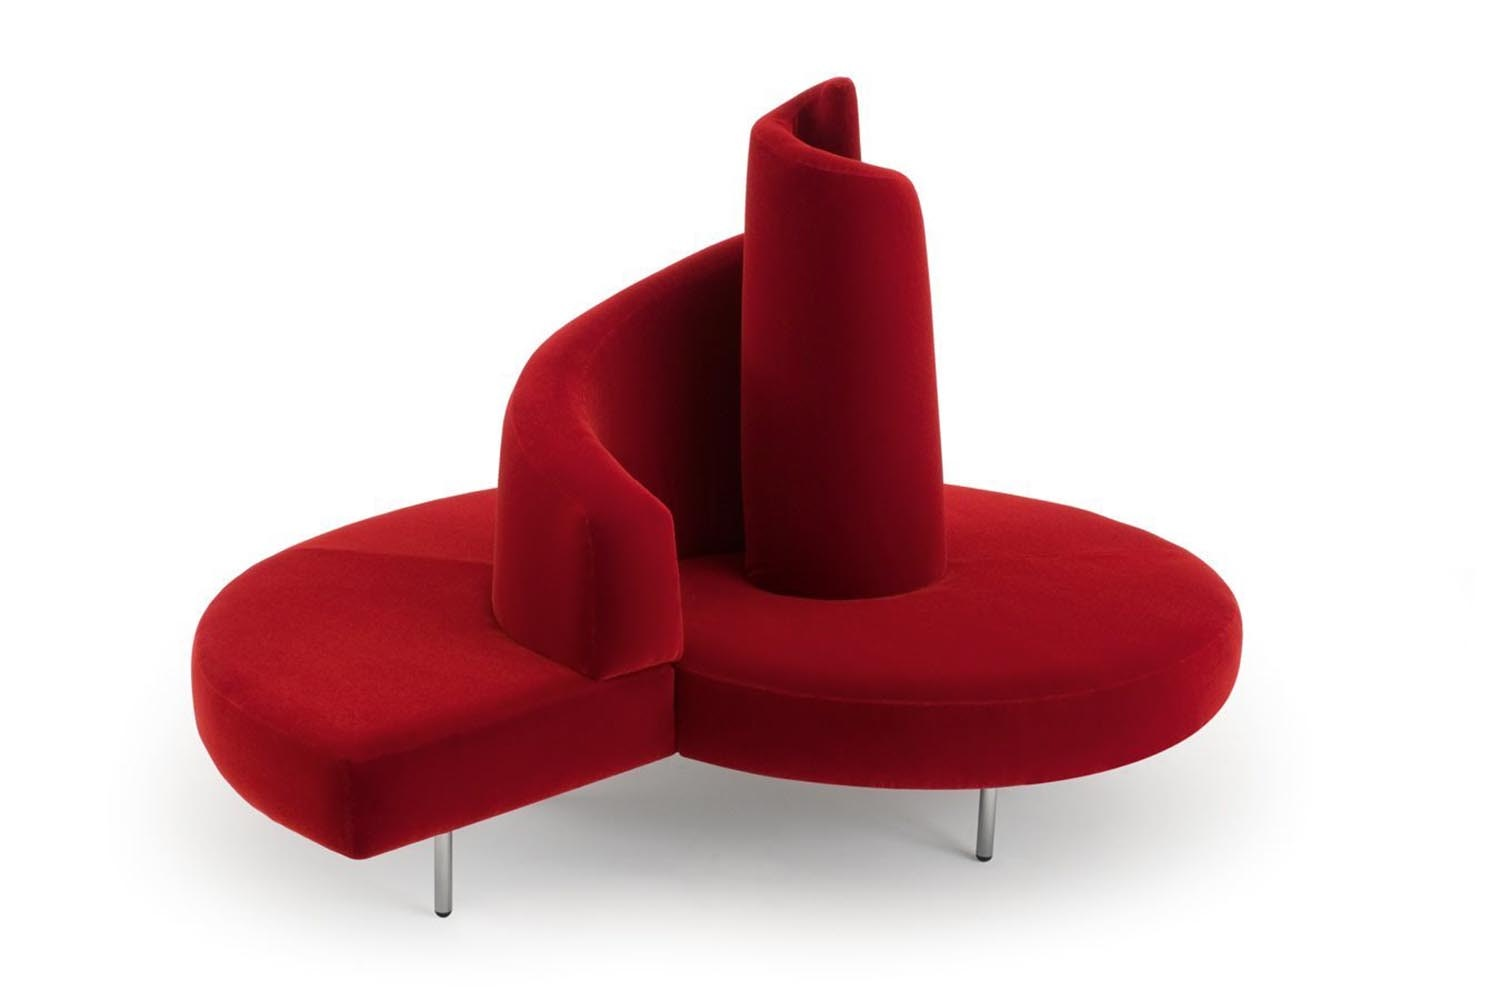 Tatlin Sofa by Cananzi e Semprini for Edra